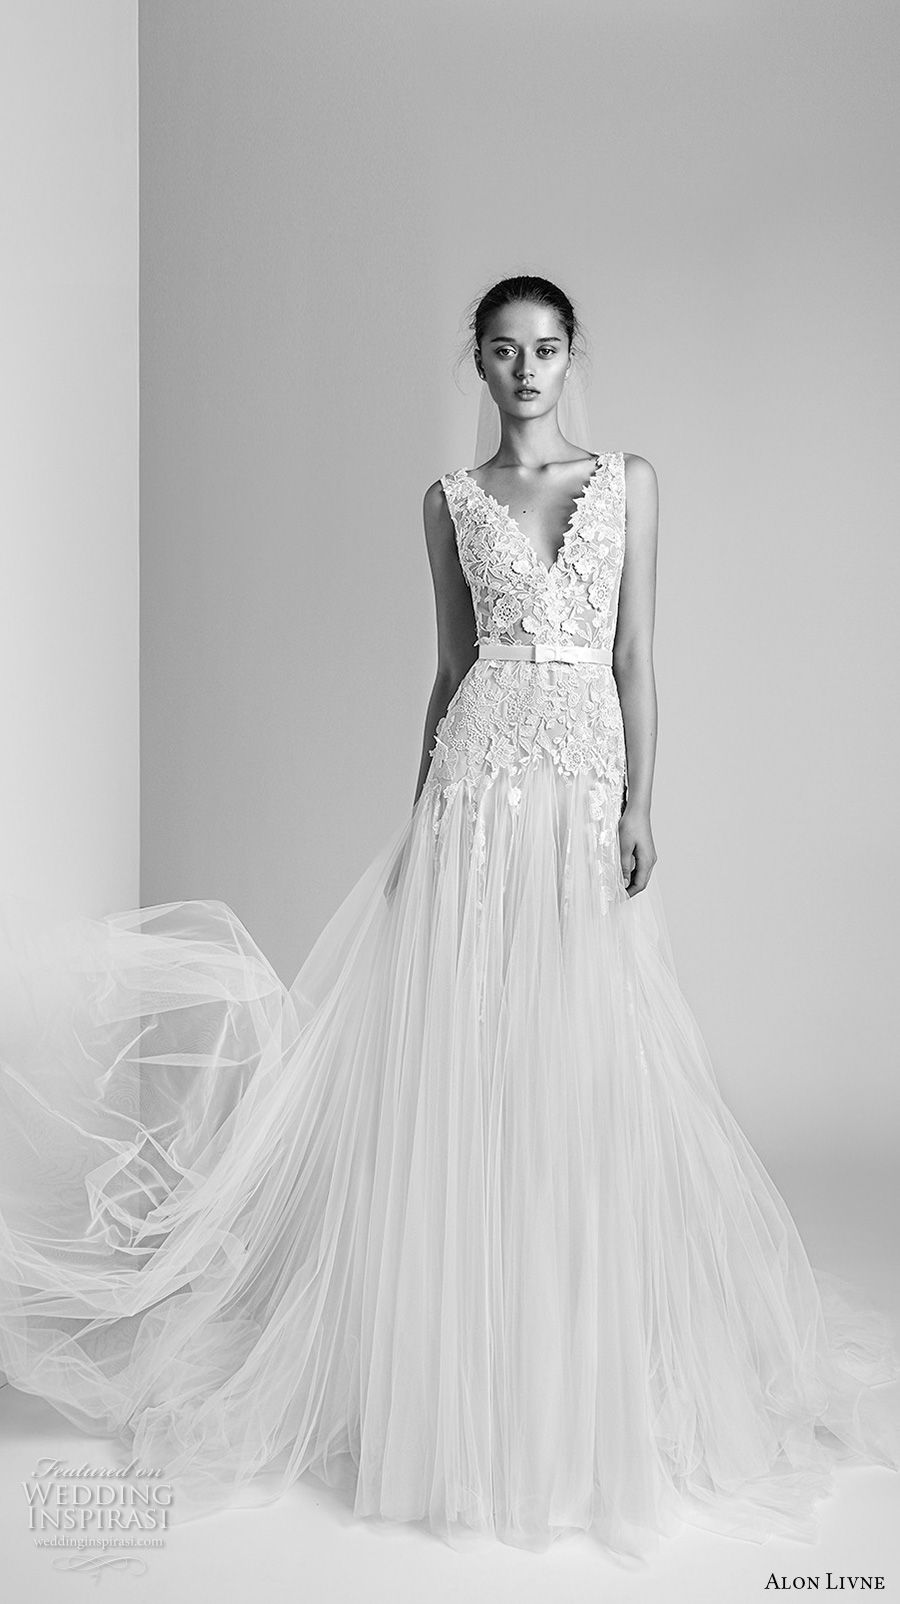 alon livne 2018 bridal sleeveless v neck heavily embellished bodice tulle skirt romanitc a line wedding dress (1) mv